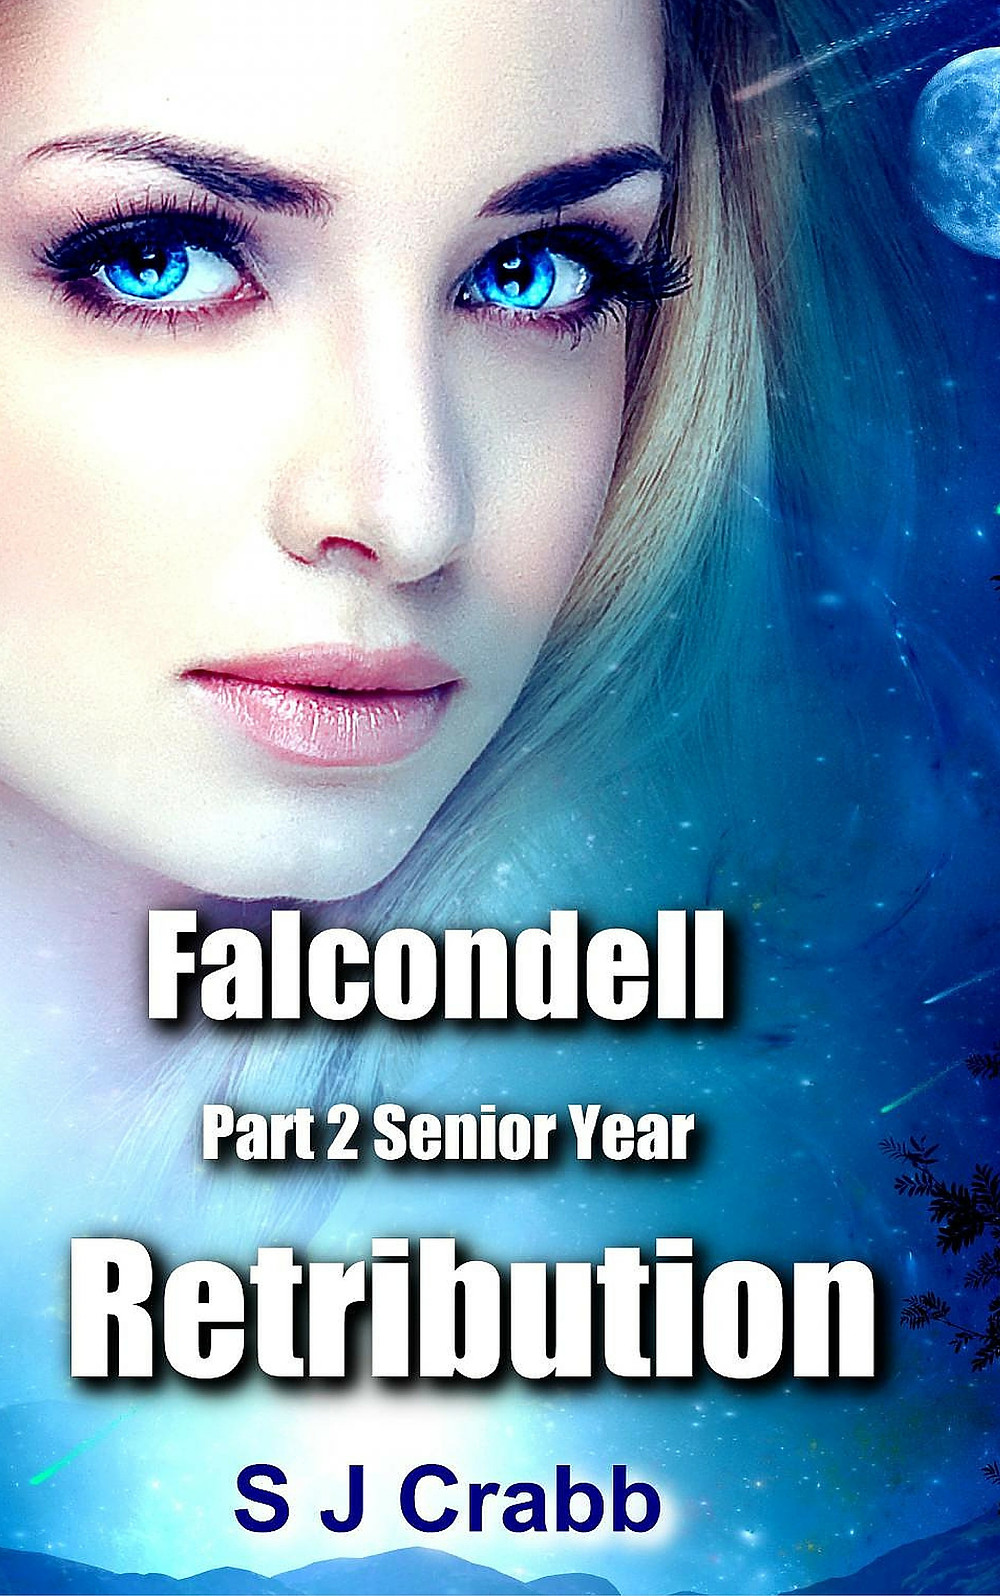 Available Now on Amazon https://www.amazon.co.uk/Falcondell-Part-2-Retribution-CRABB-ebook/dp/B01HMP4OP2/ref=sr_1_1?s=digital-text&ie=UTF8&qid=1467040045&sr=1-1